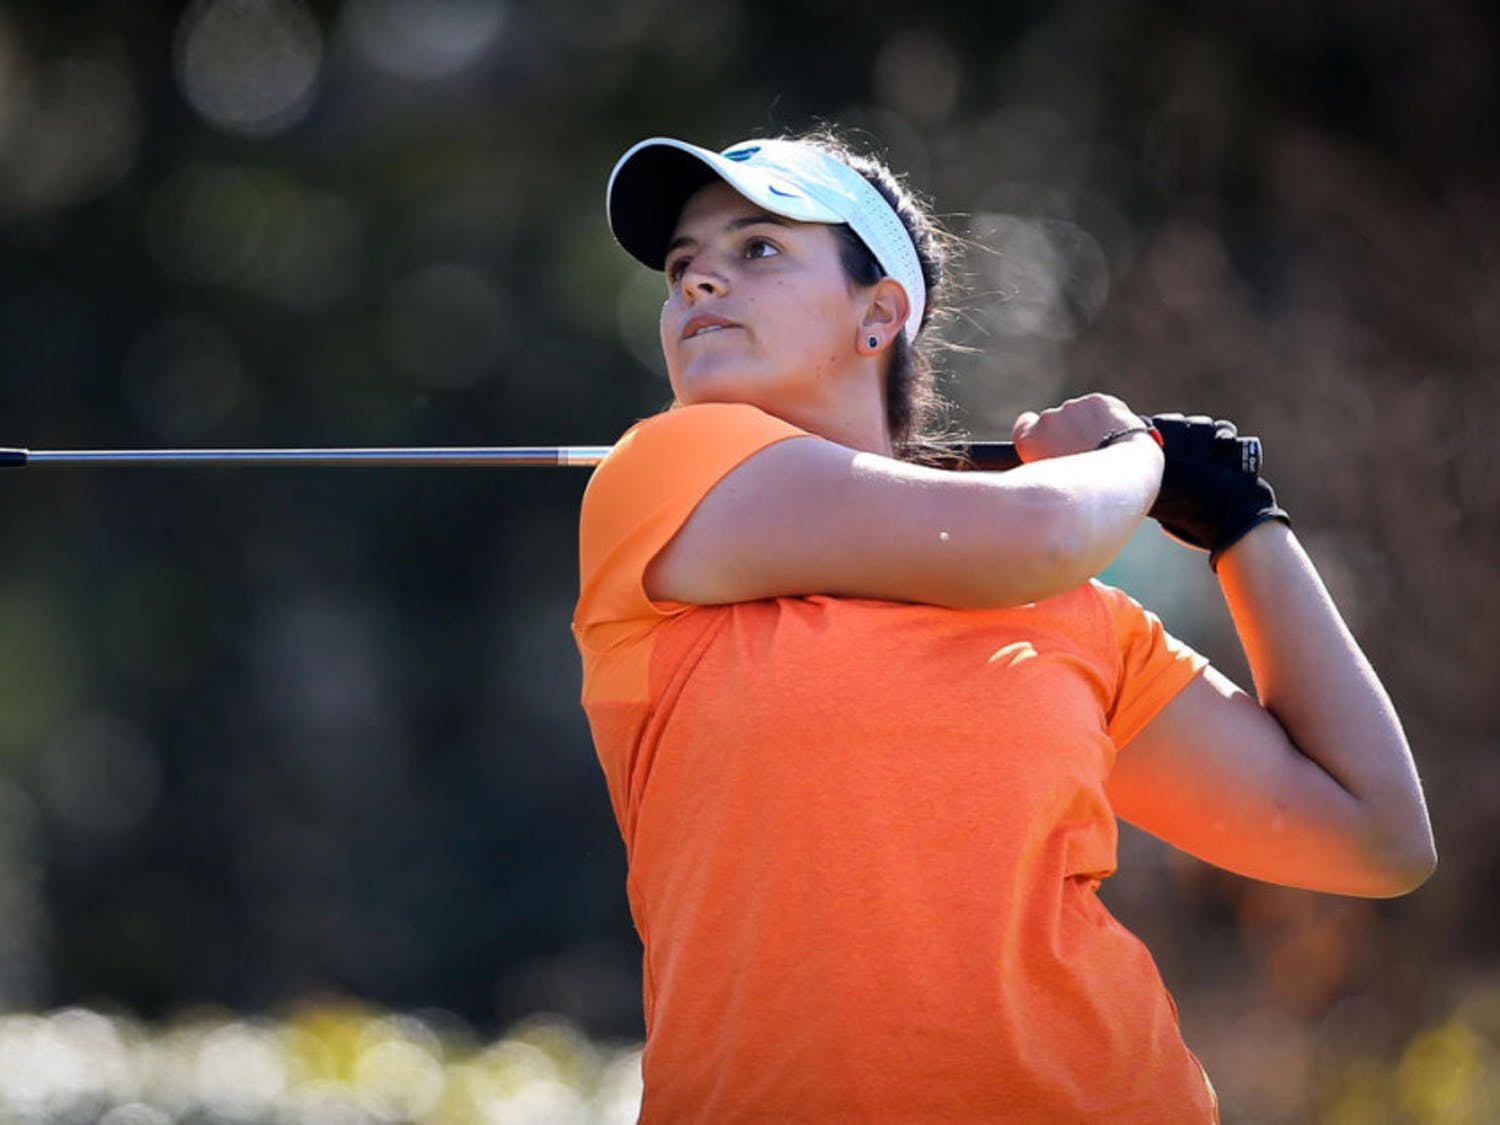 Maria Torres watches her shot during the SunTrust Gator Invitational on March 11, 2017, at the Mark Bostick Golf Course in Gainesville.